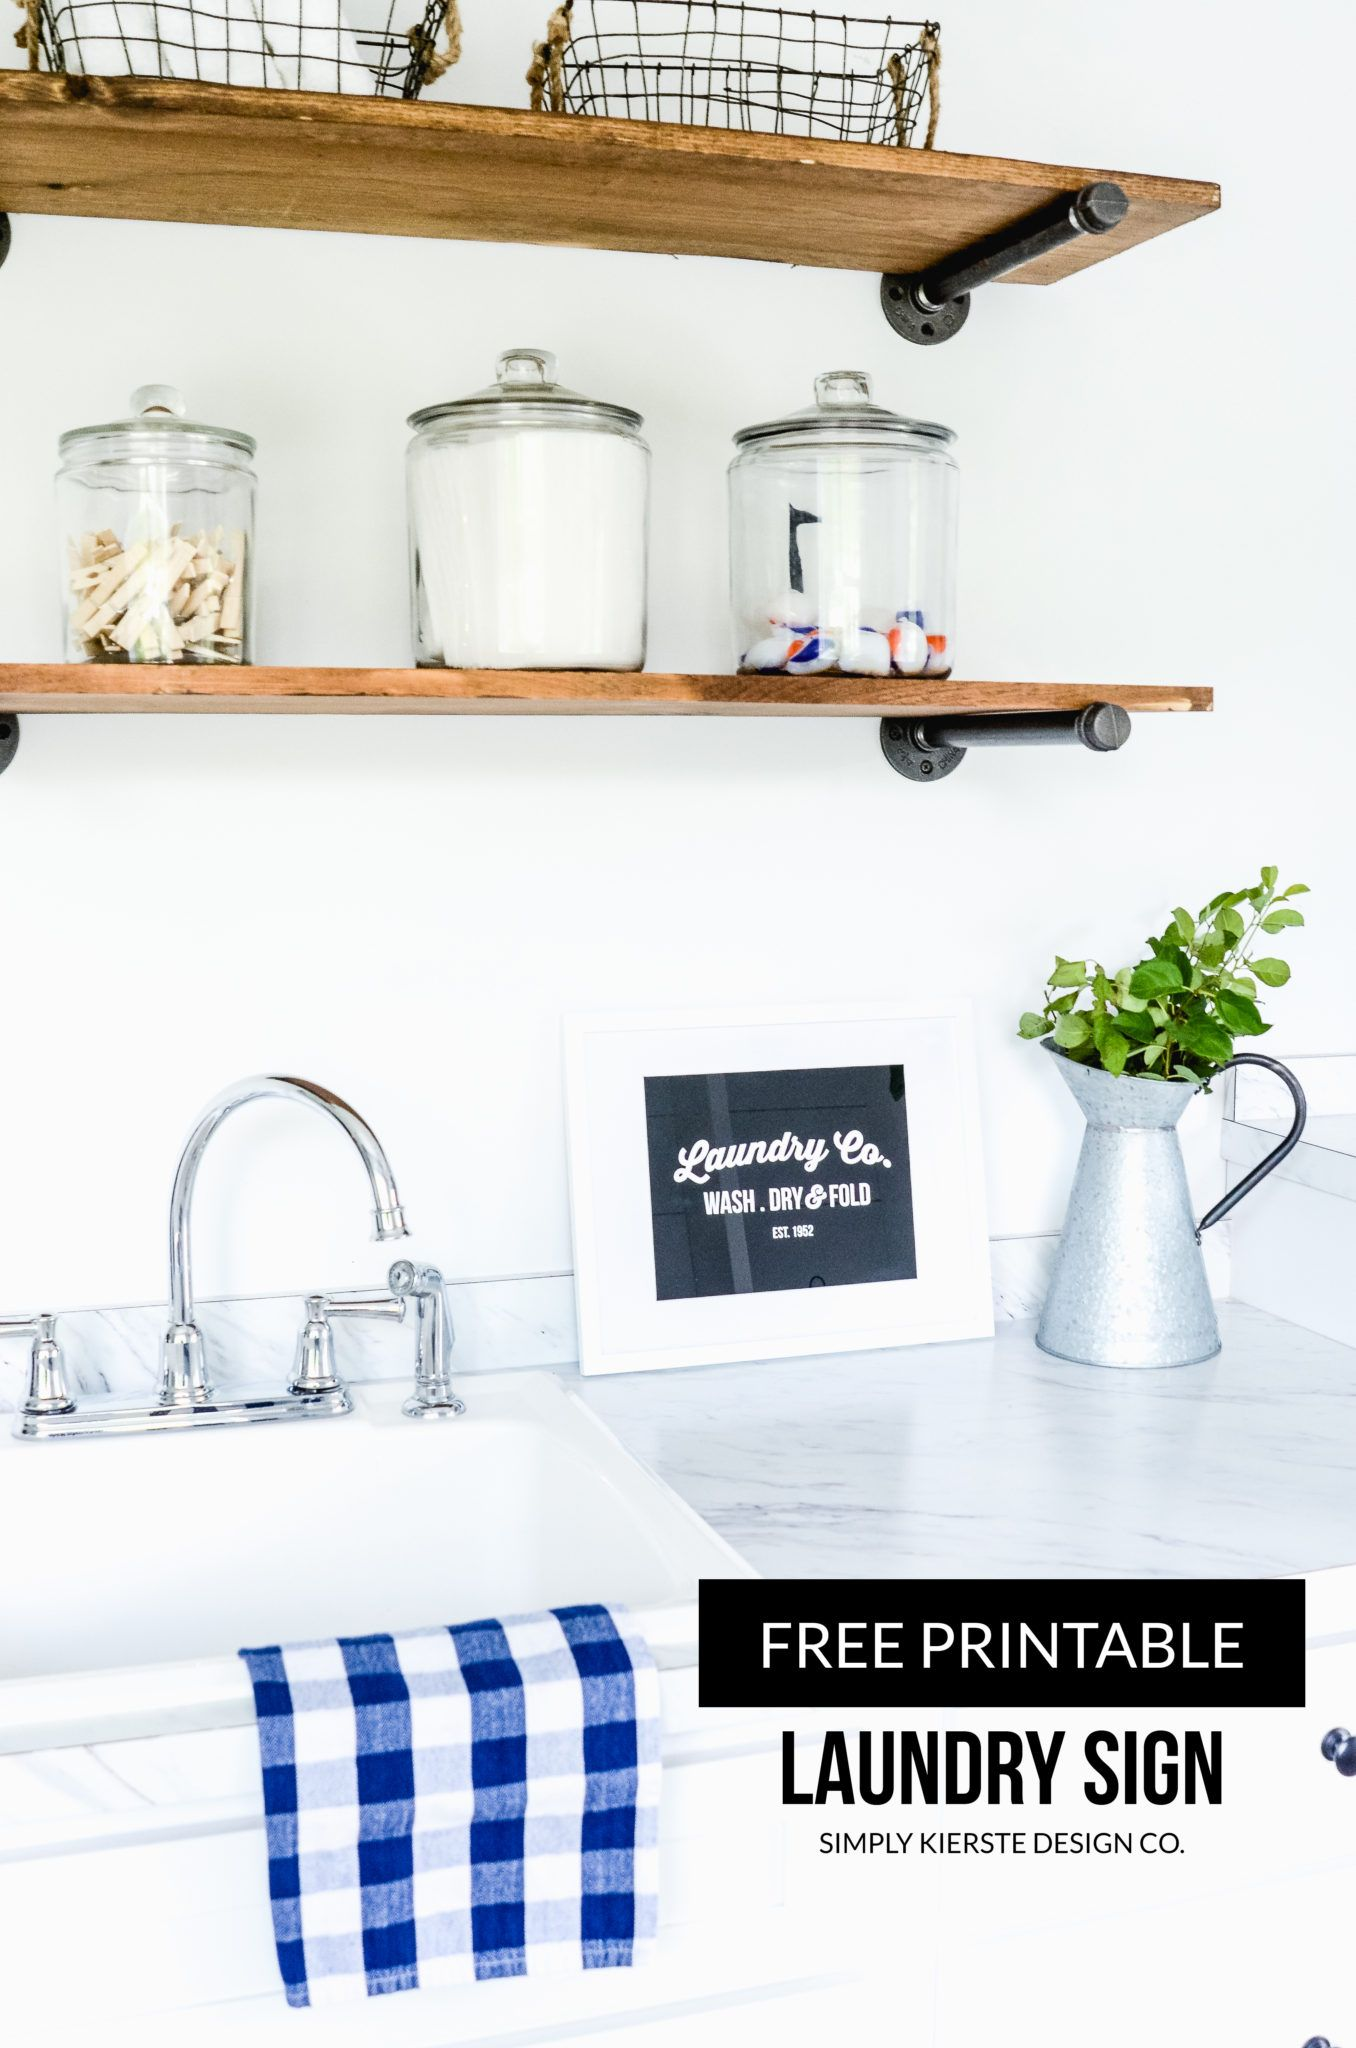 Free Printable Laundry Sign Laundry Signs Laundry Home Decor